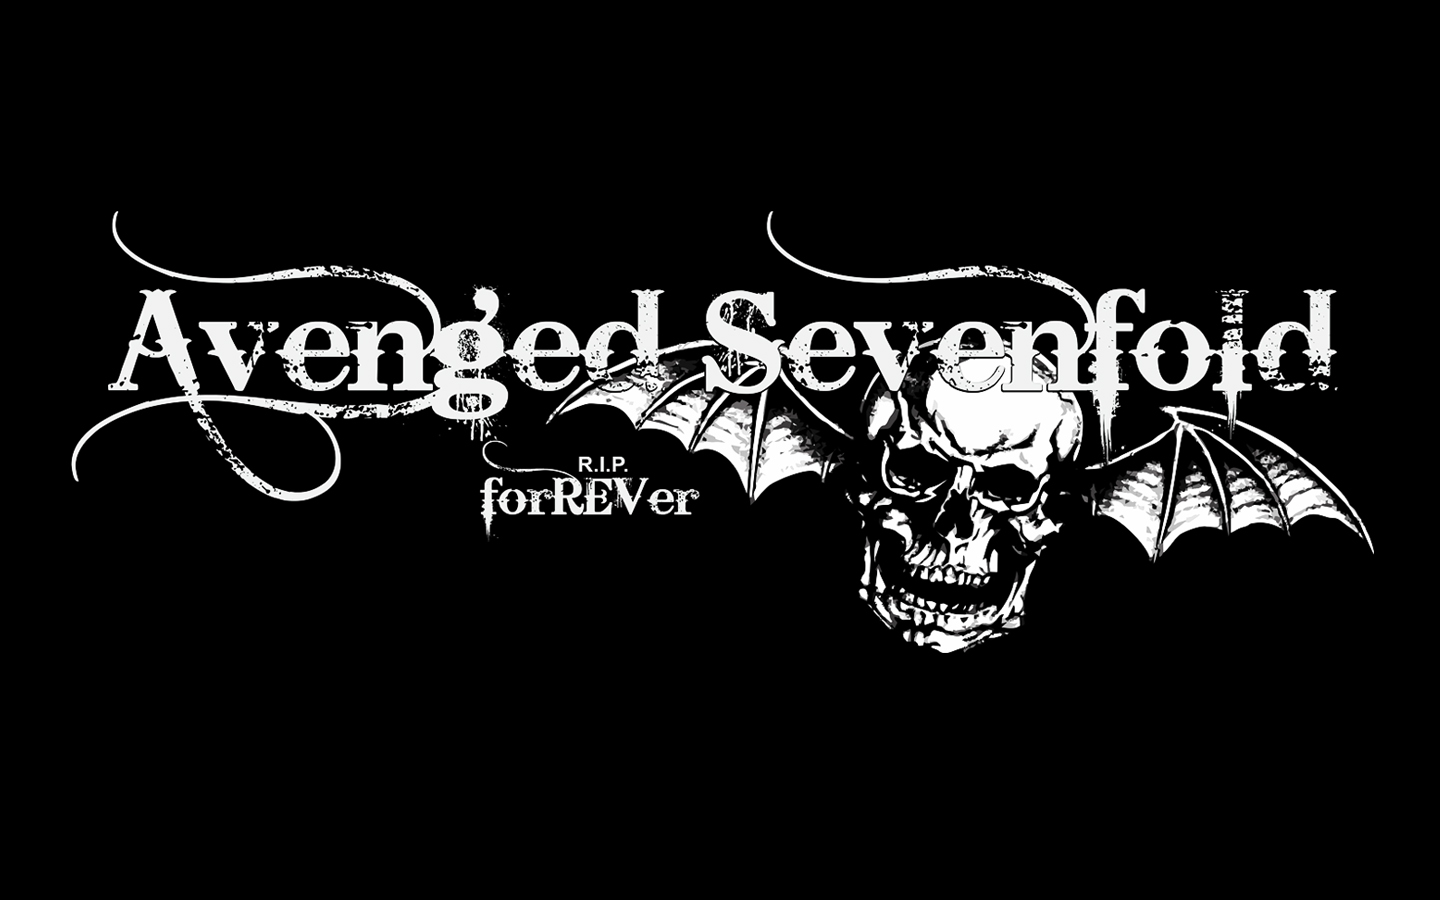 Description A7X Avenged Sevenfold Wallpaper is a hi res Wallpaper for 1440x900